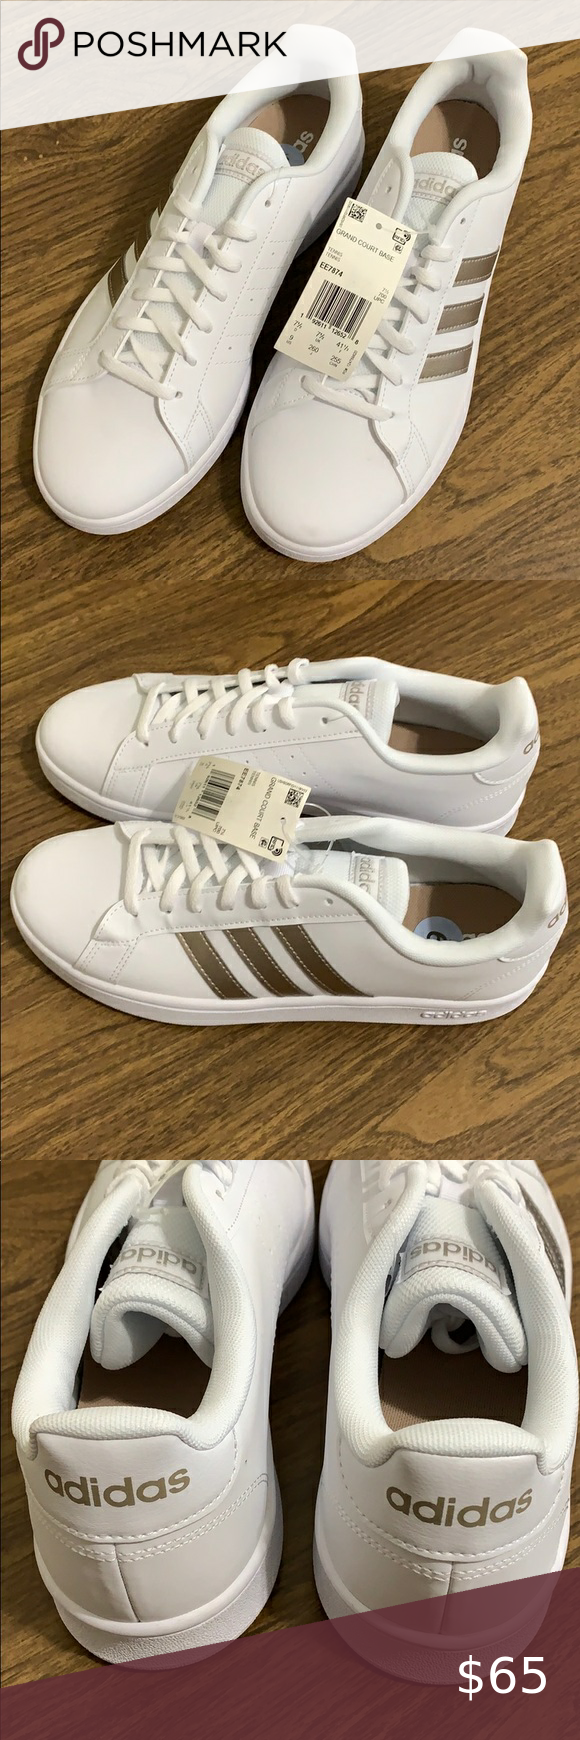 Adidas Women S Tennis Grand Court Base Sz 9 In 2020 Adidas Women Womens Tennis Casual Sneakers